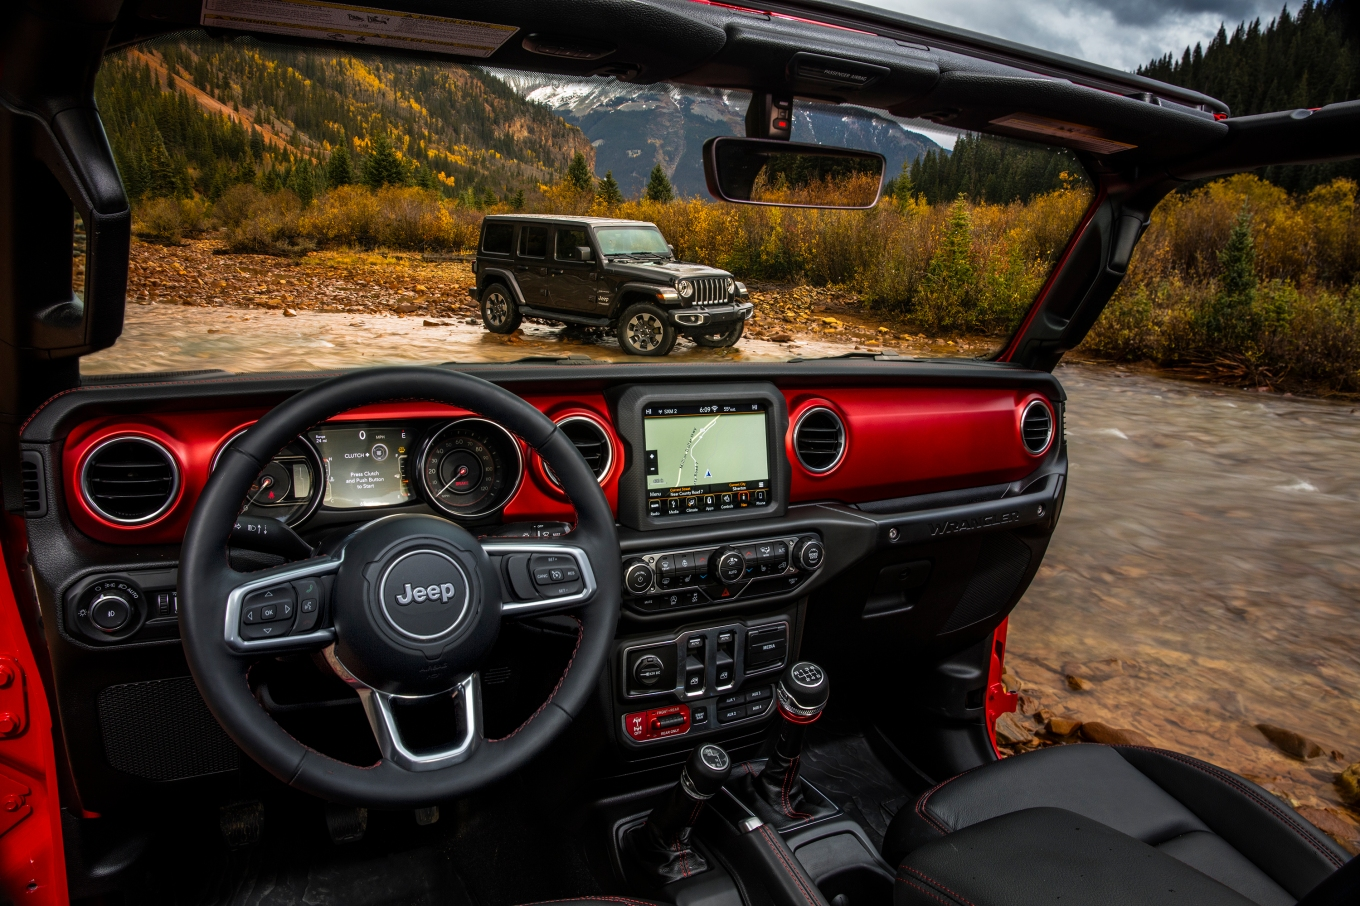 All-new 2018 Jeep® Wrangler Sahara (top) and All-new 2018 Jeep